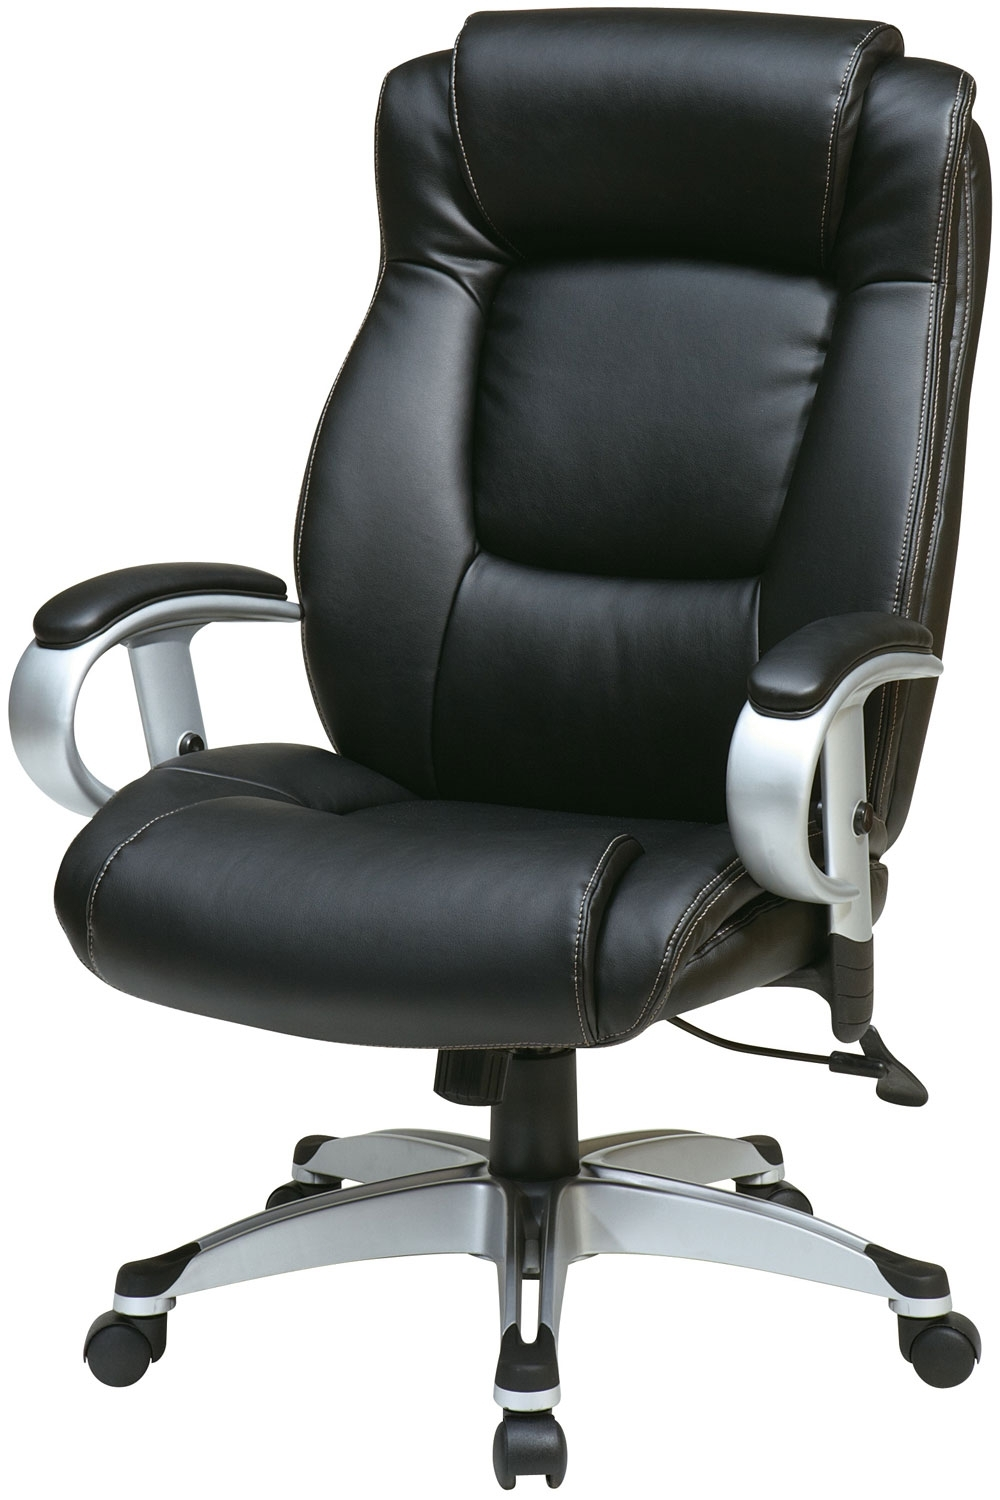 Most Recent Ech52666 Ec3 Office Star – Executive Black Eco Leather Chair With Intended For Executive Office Chairs Without Arms (View 14 of 20)